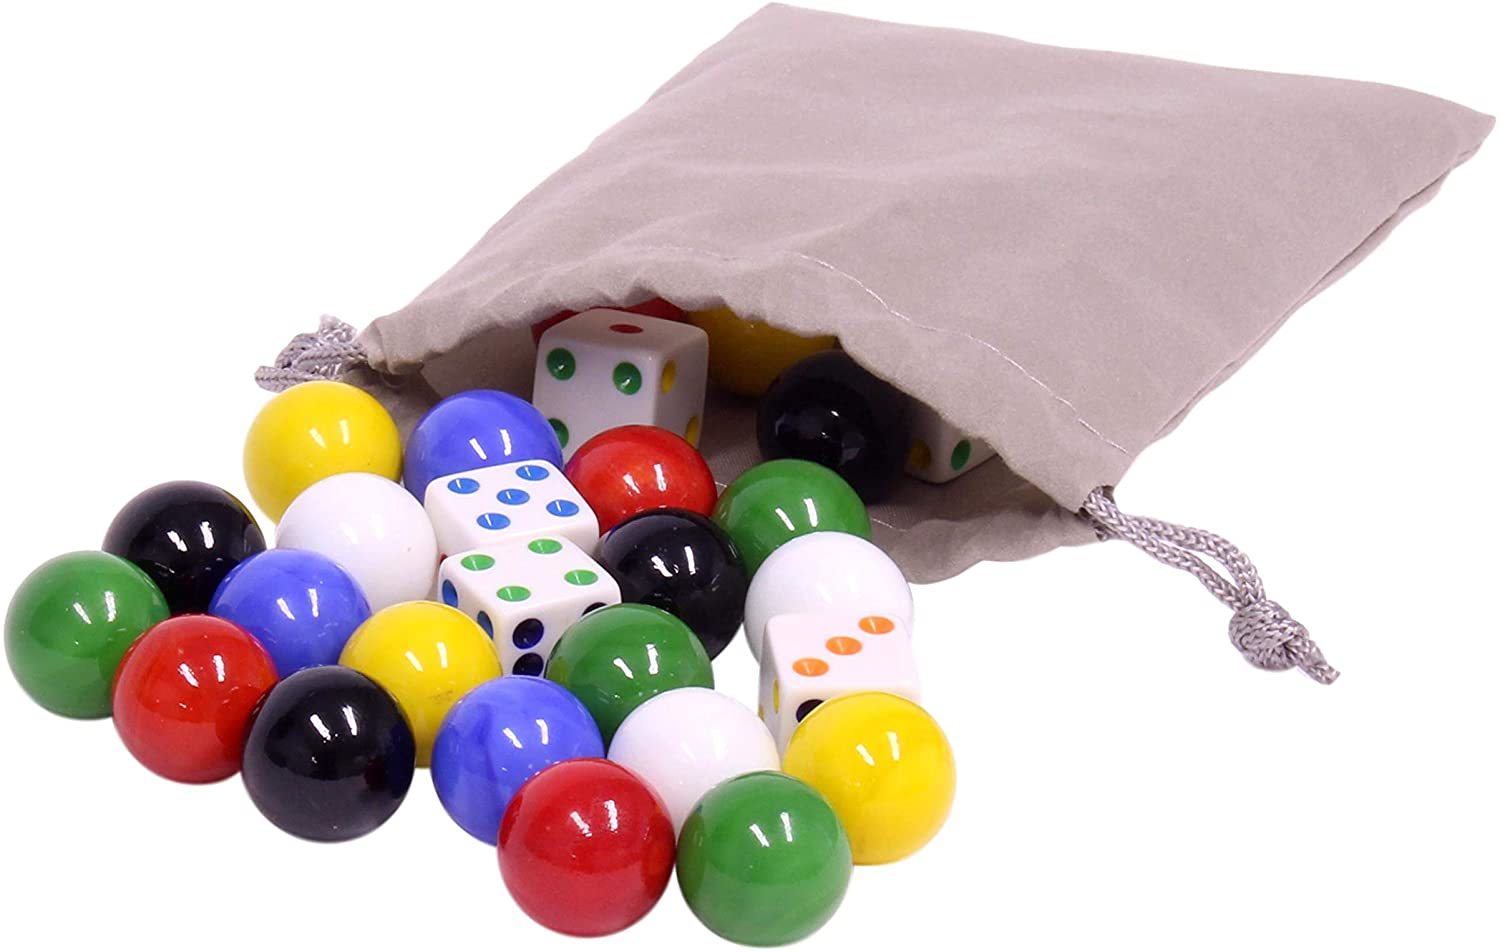 Game Bag of 24 Large Glass Marbles (18mm Diameter) and 6 Dice for Aggravation Game